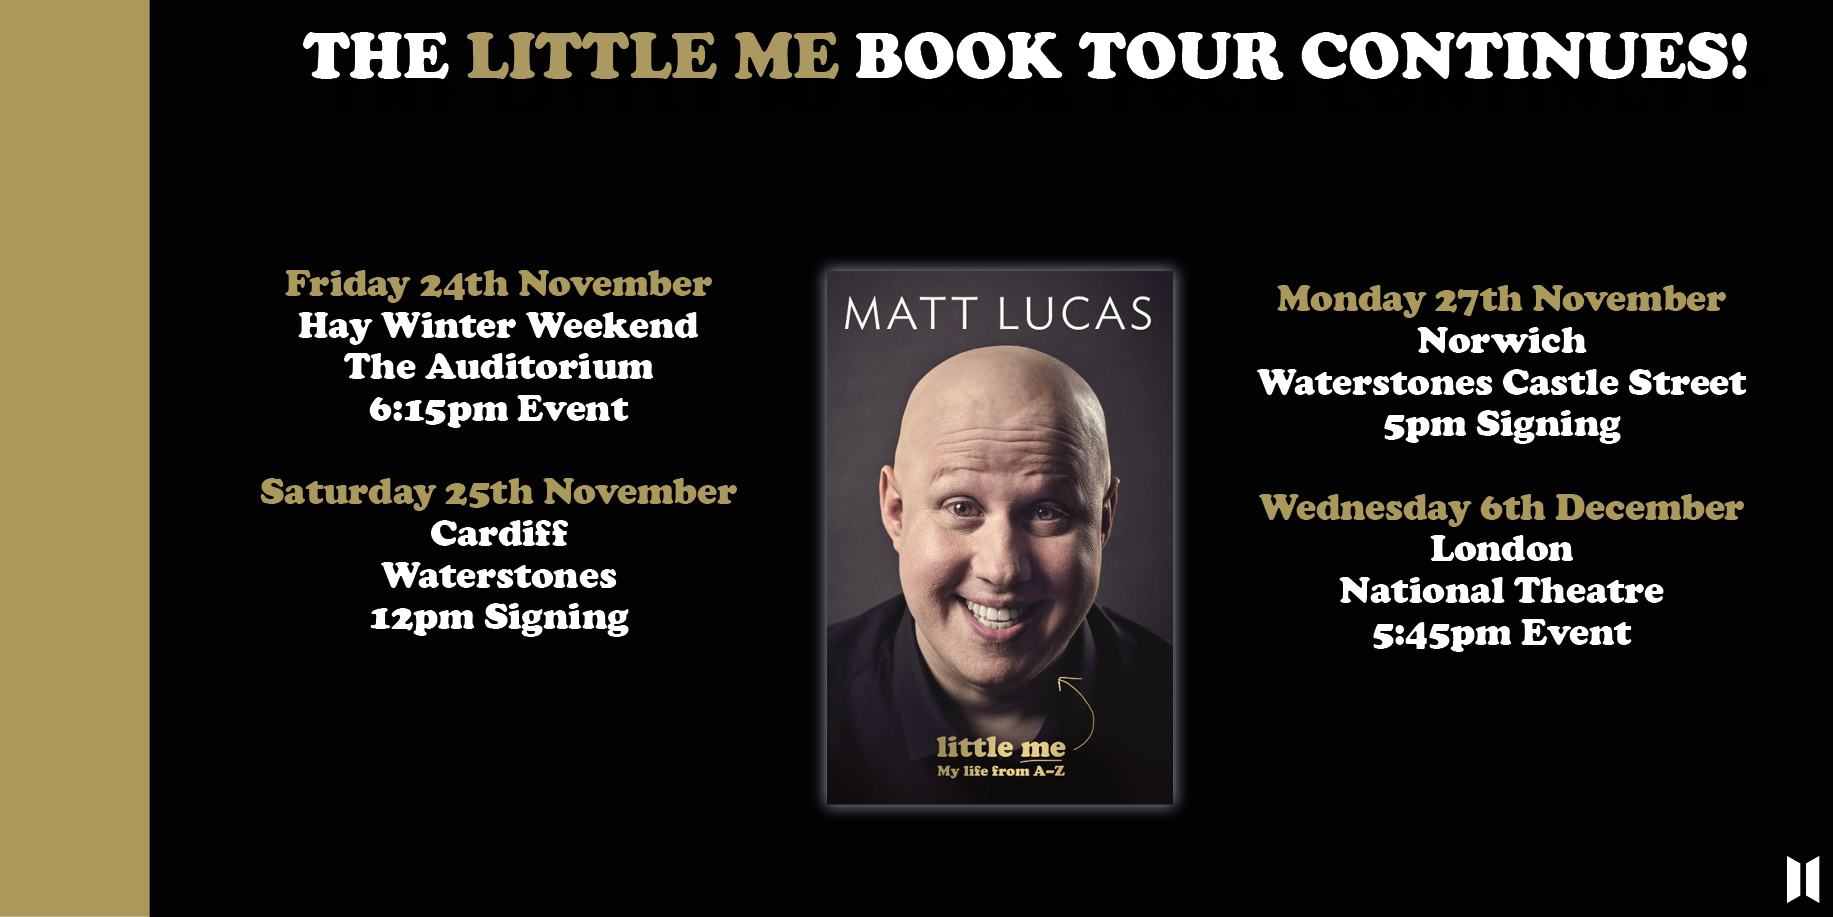 I'm doing some more book signings/Q&A's to promote my autobiography LITTLE ME! Come along if you can.... https://t.co/pwBKuoSmfm